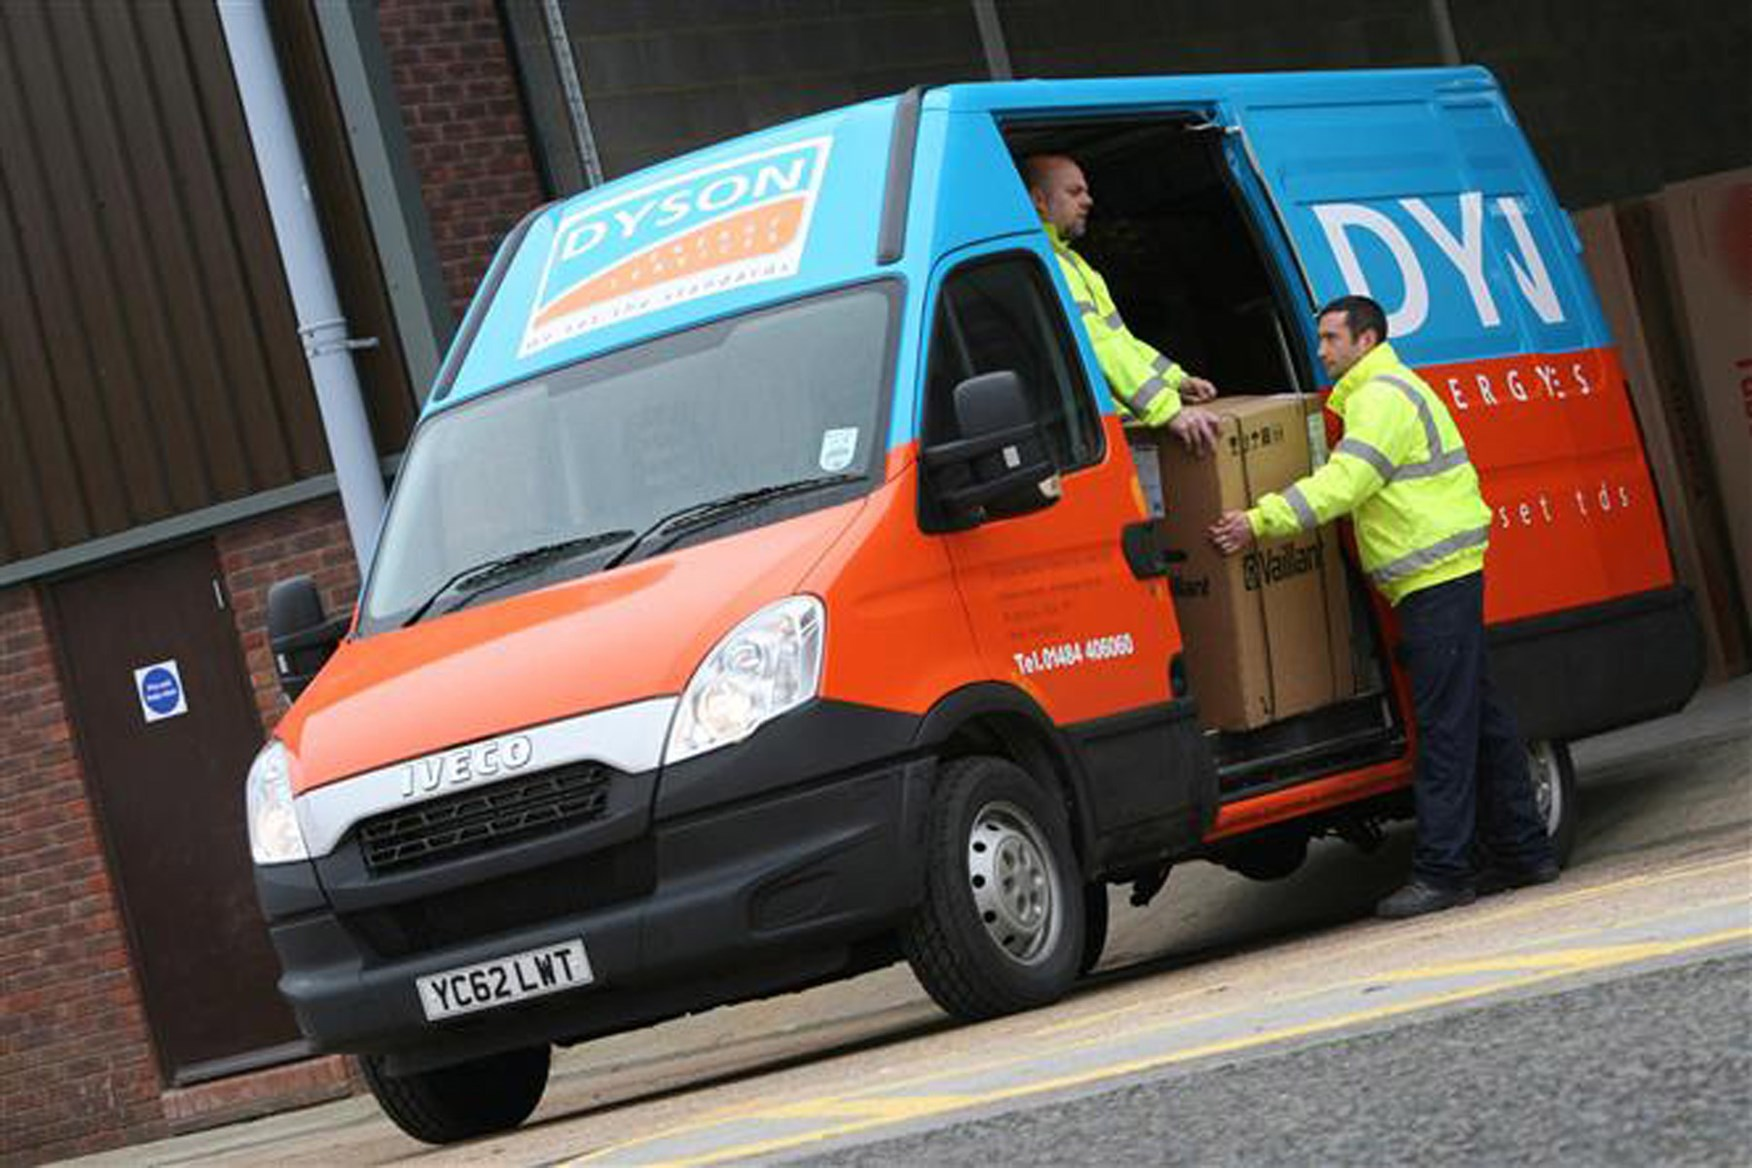 Iveco Daily 2009-2012 review on Parkers Vans - loading access